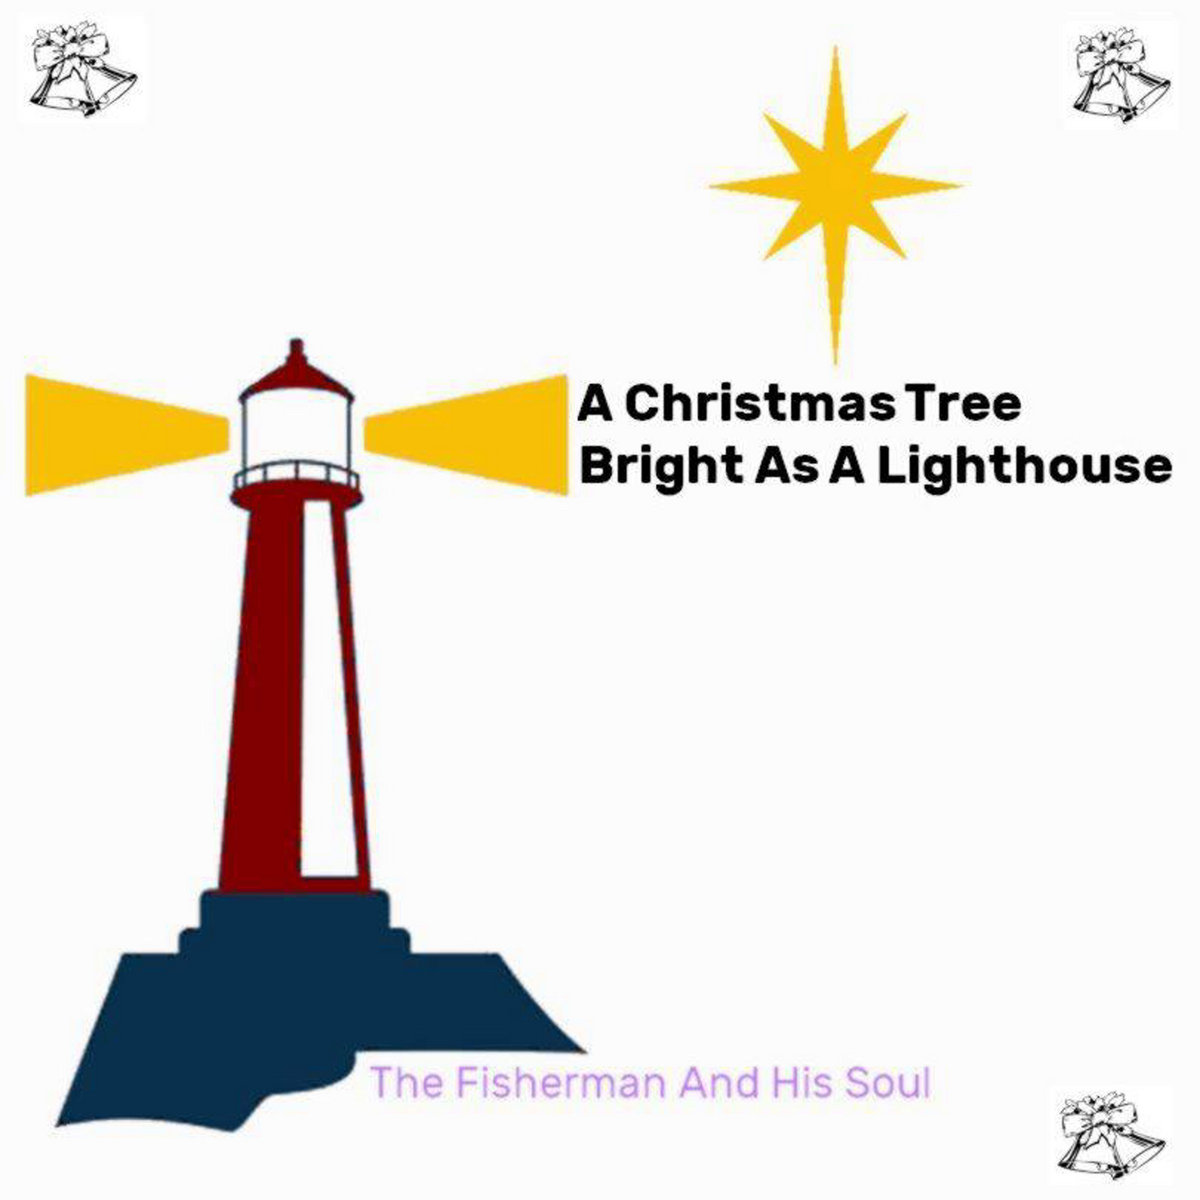 The Fisherman and his Soul - A Christmas Tree Bright as a Lighthouse